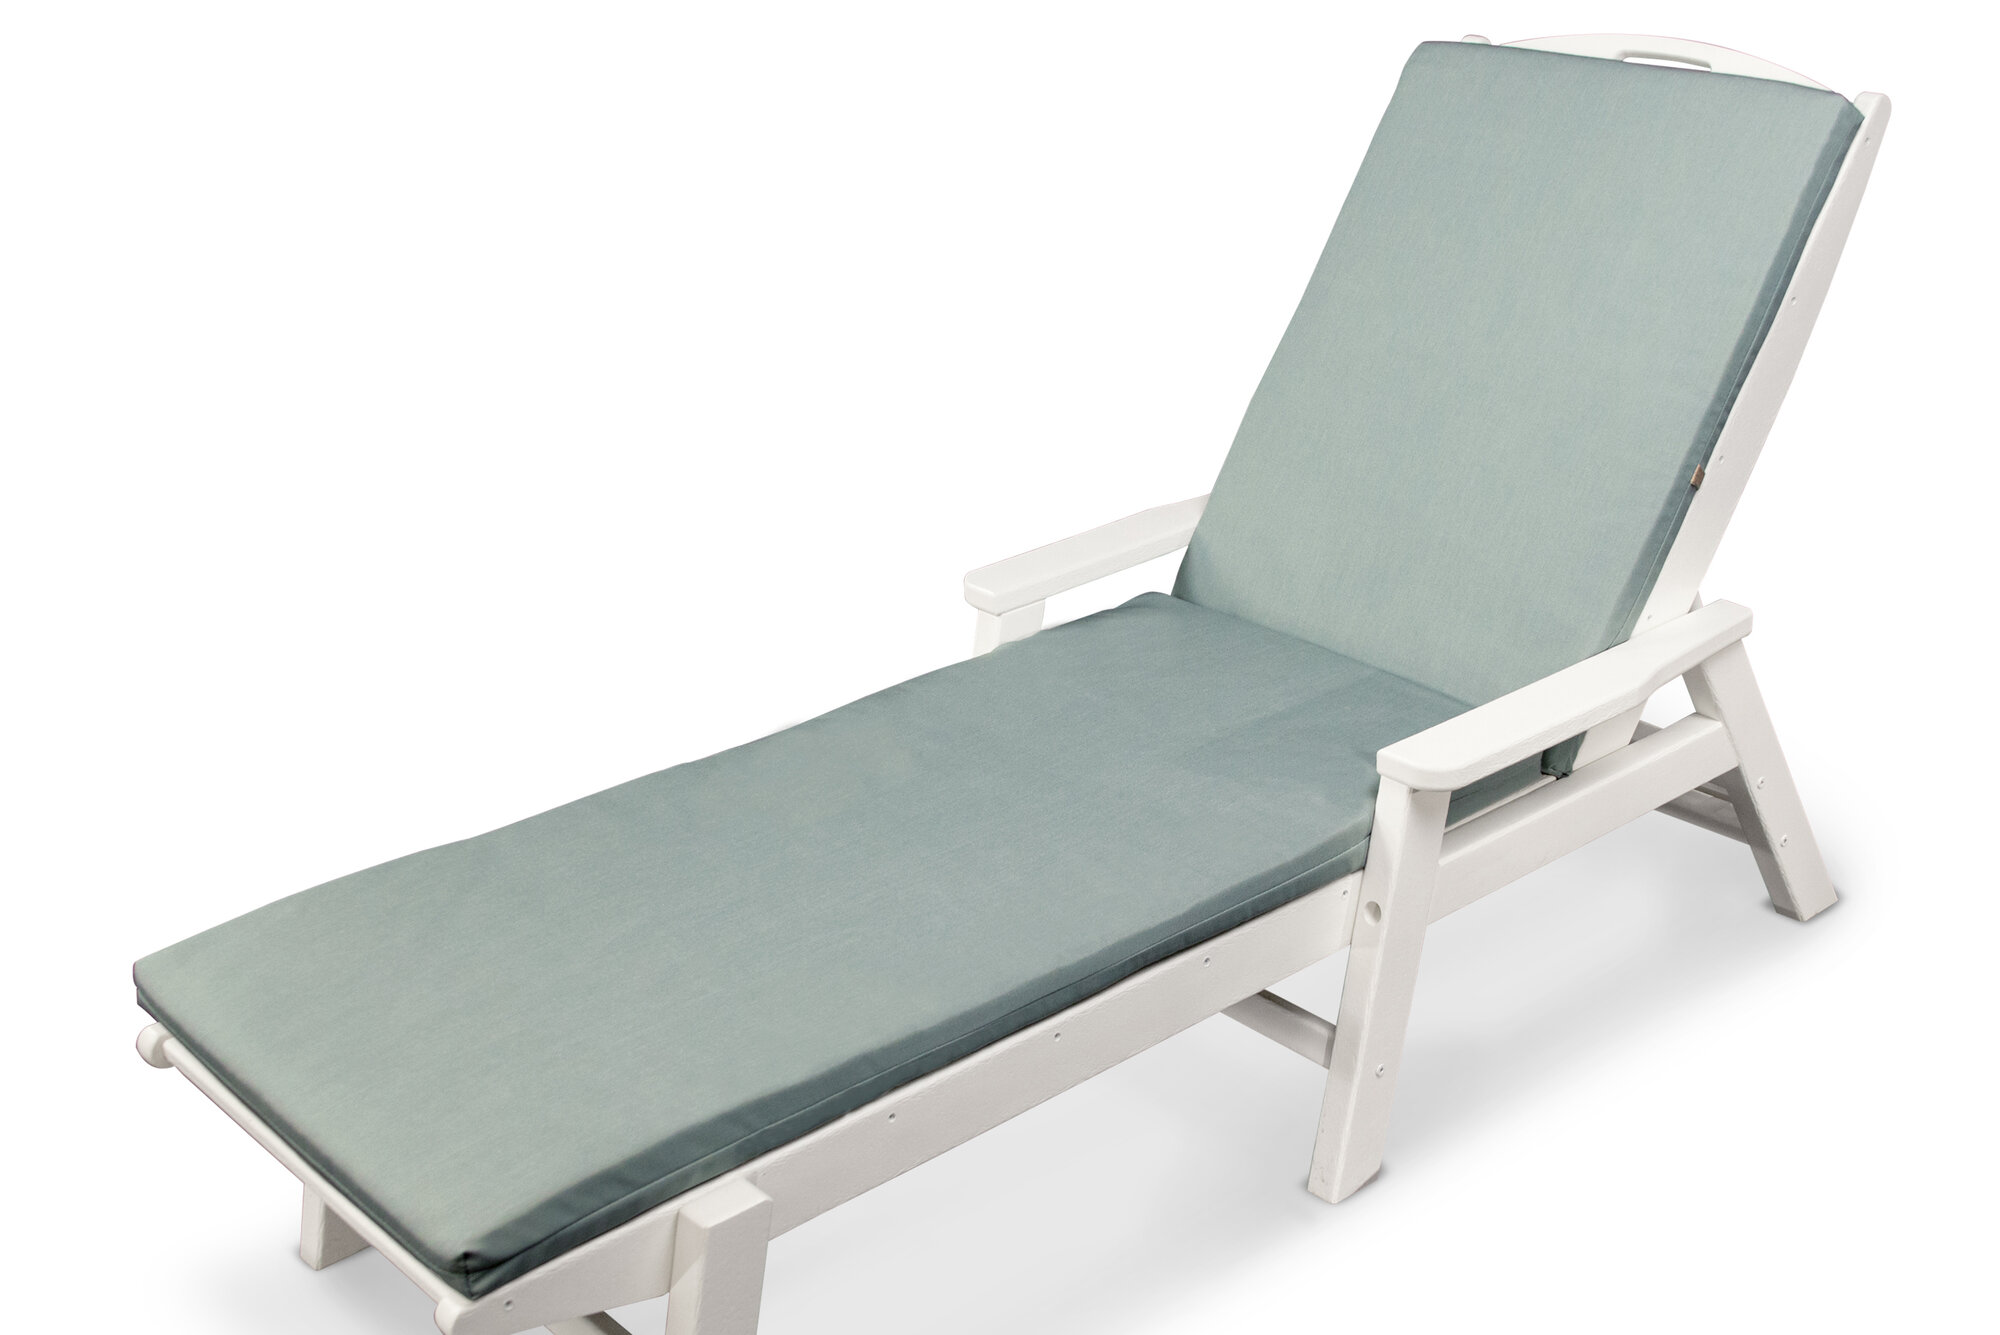 Ateeva outdoor sunbrella chaise lounge cushion ebay for Chaise longue cushions